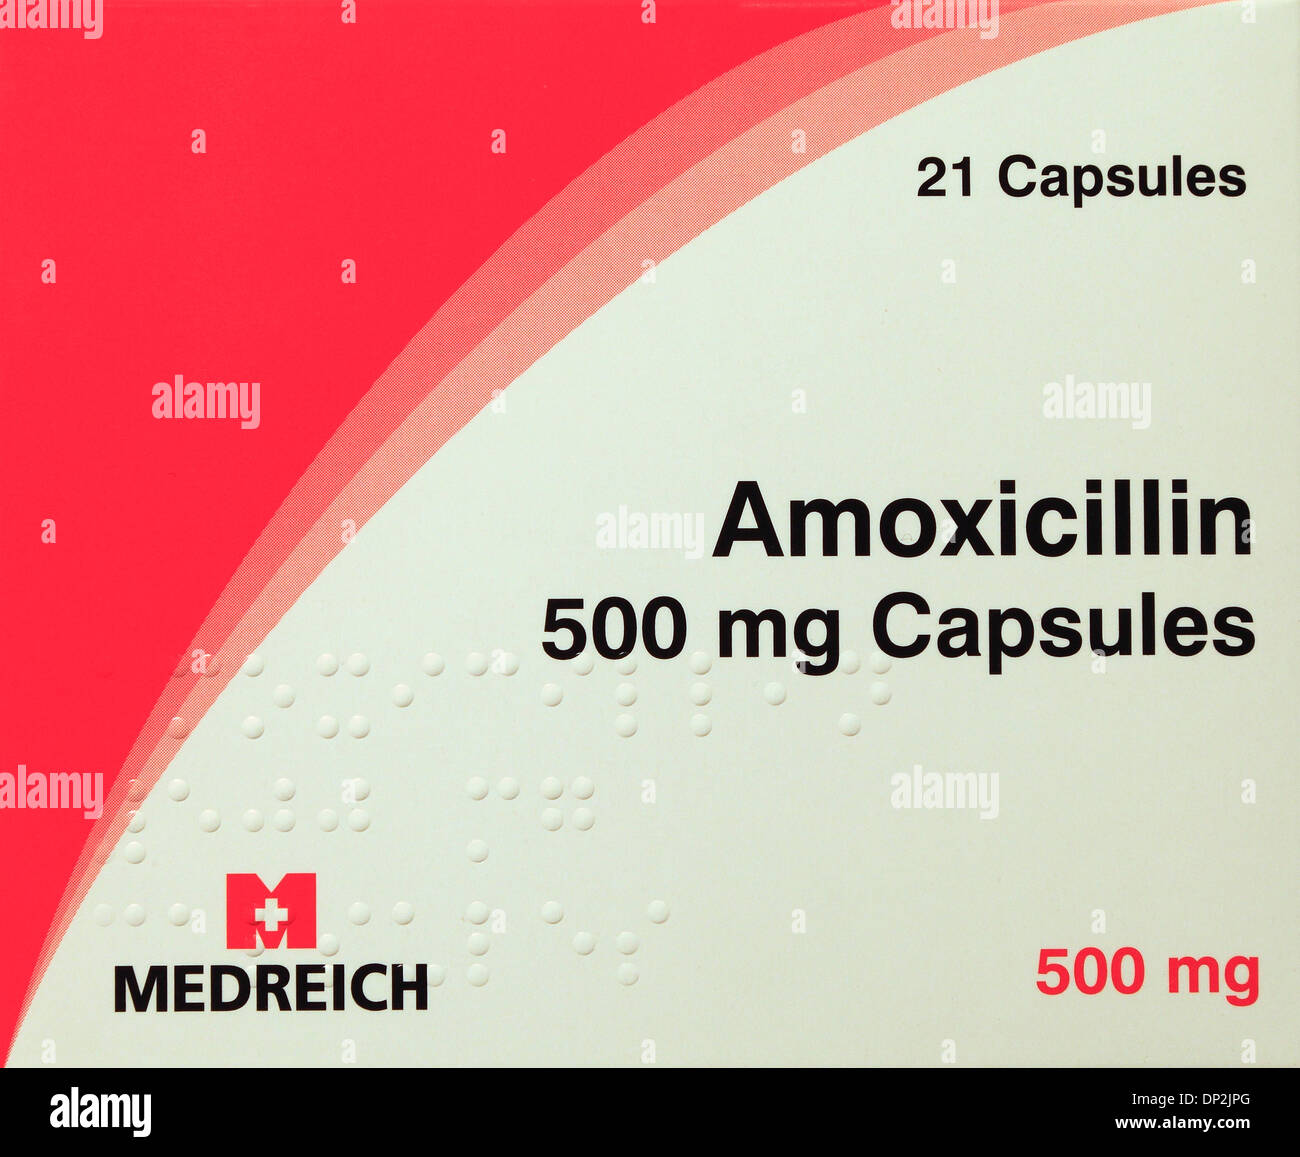 Amoxicilline 500 mg, comprimés, capsules, pack, antibiotique, ordonnance, médicaments prescrits médicaments pénicilline tablet Photo Stock